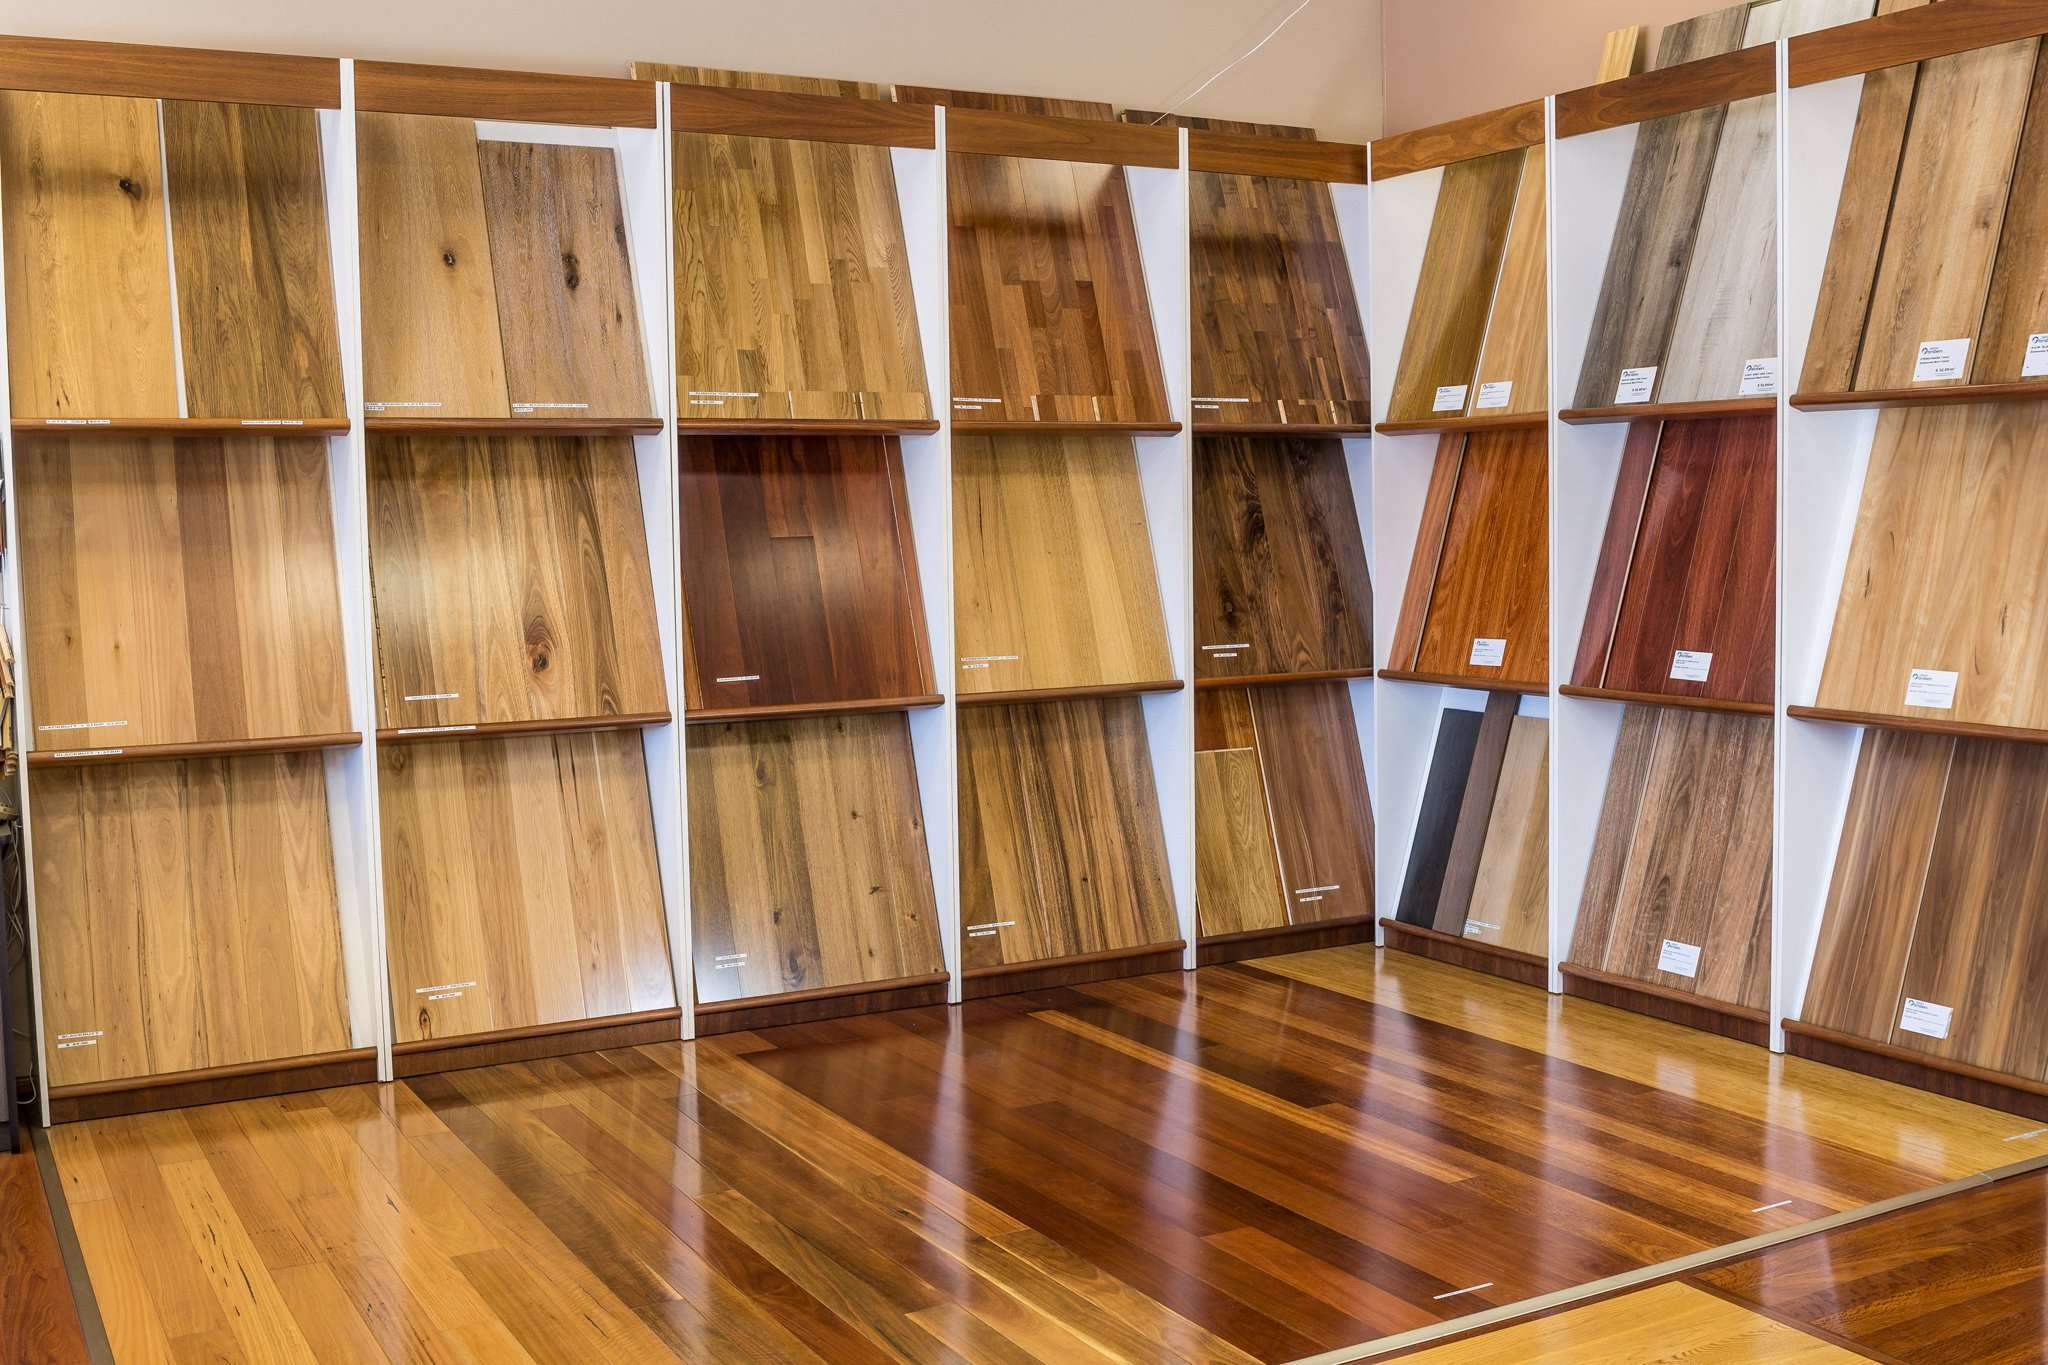 Perths Largest Range of Wood Floors